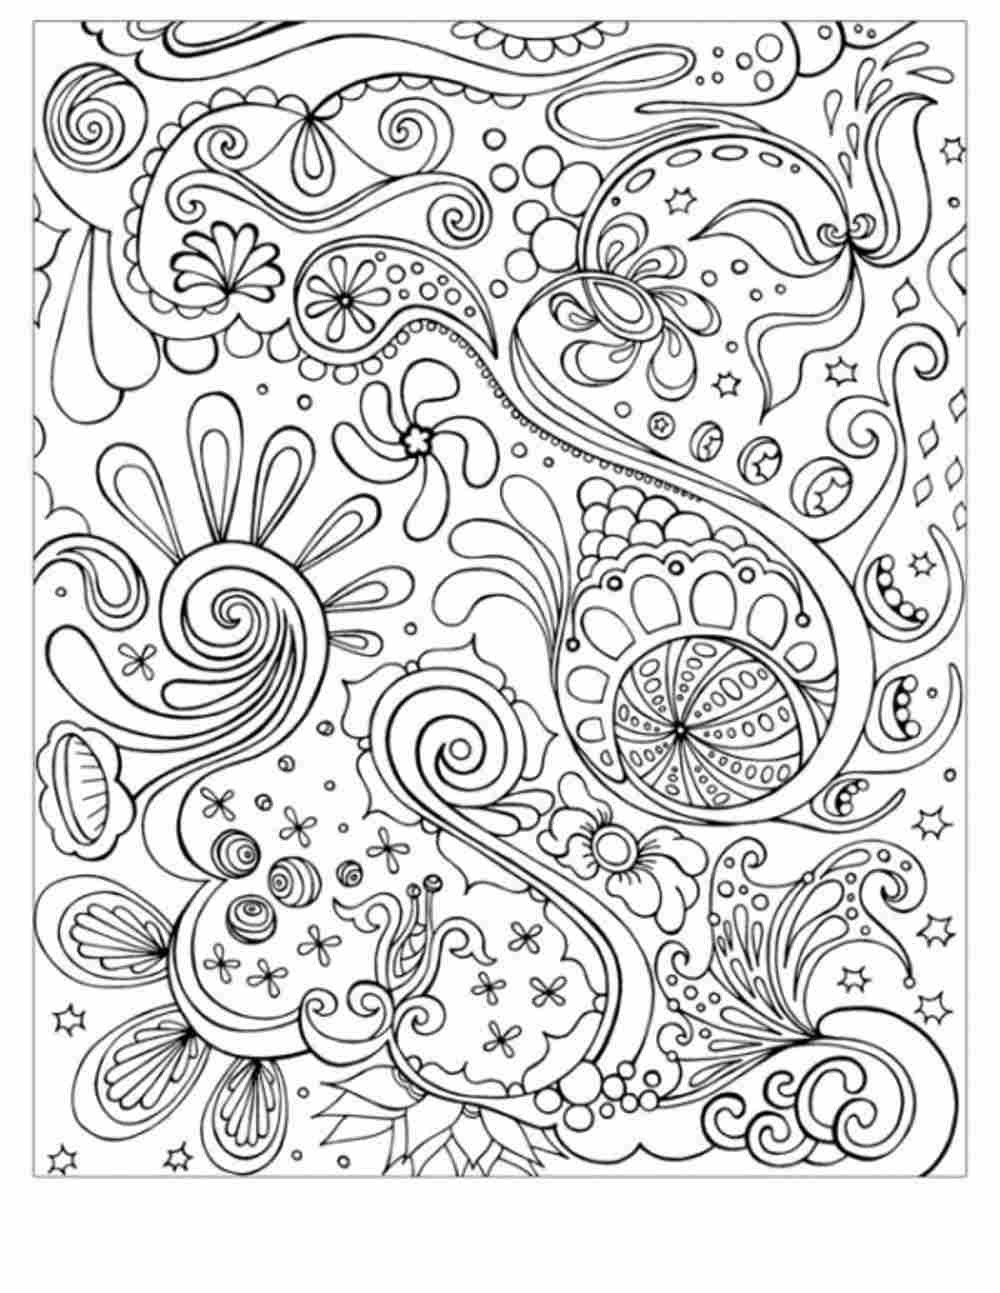 Free Coloring Pages Online Adults  44 Awesome Free Printable Coloring Pages for Adults